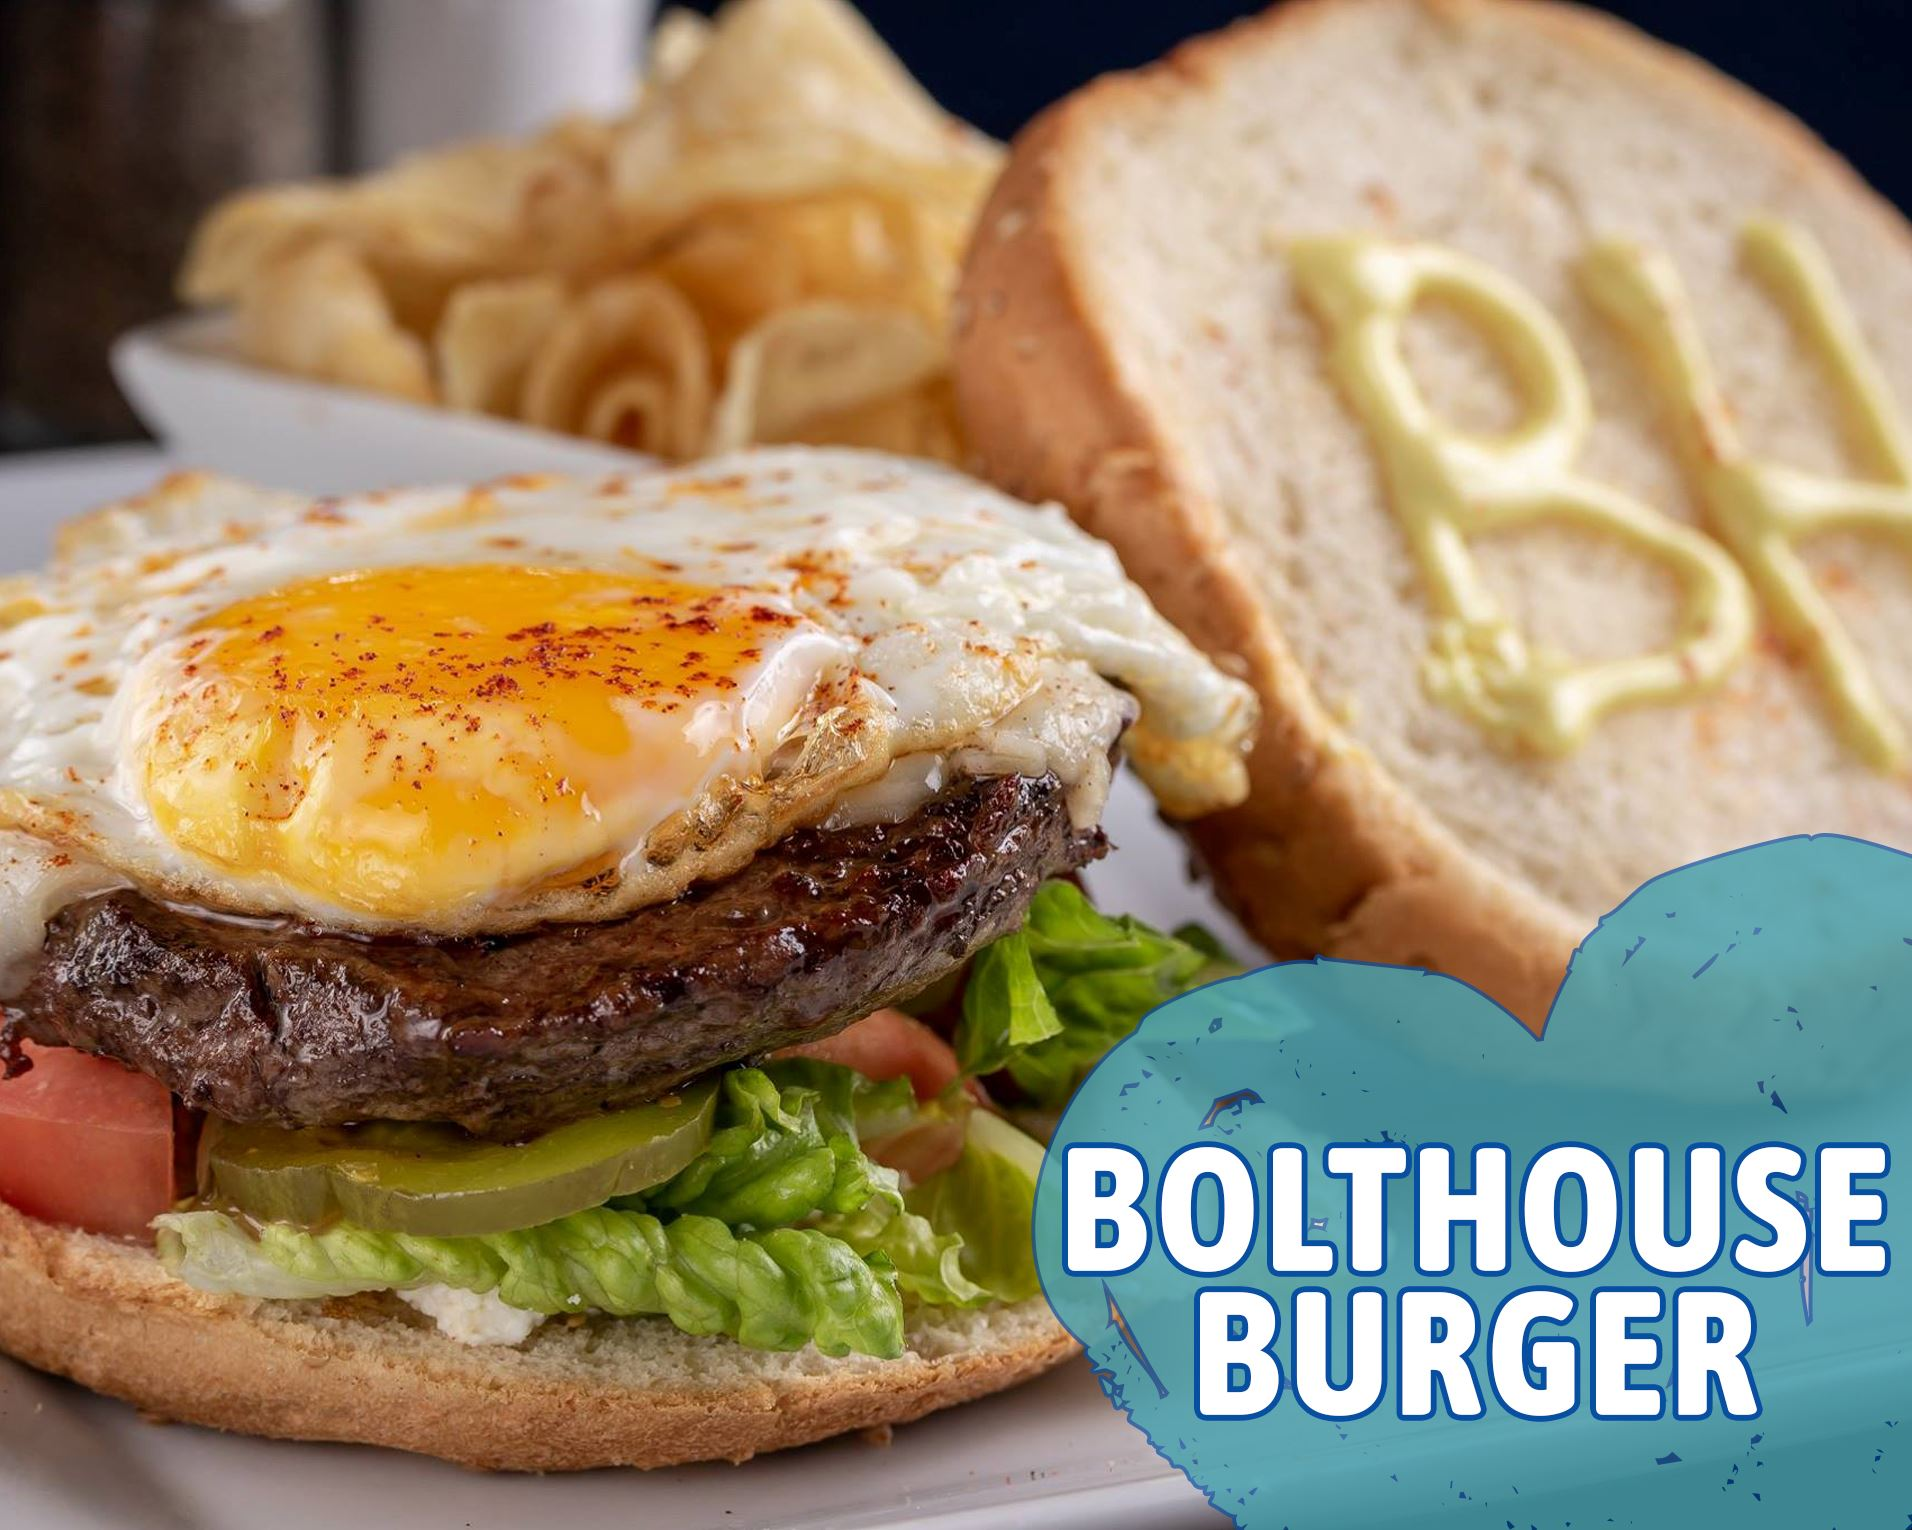 Bolthouse Burger Opens in new window